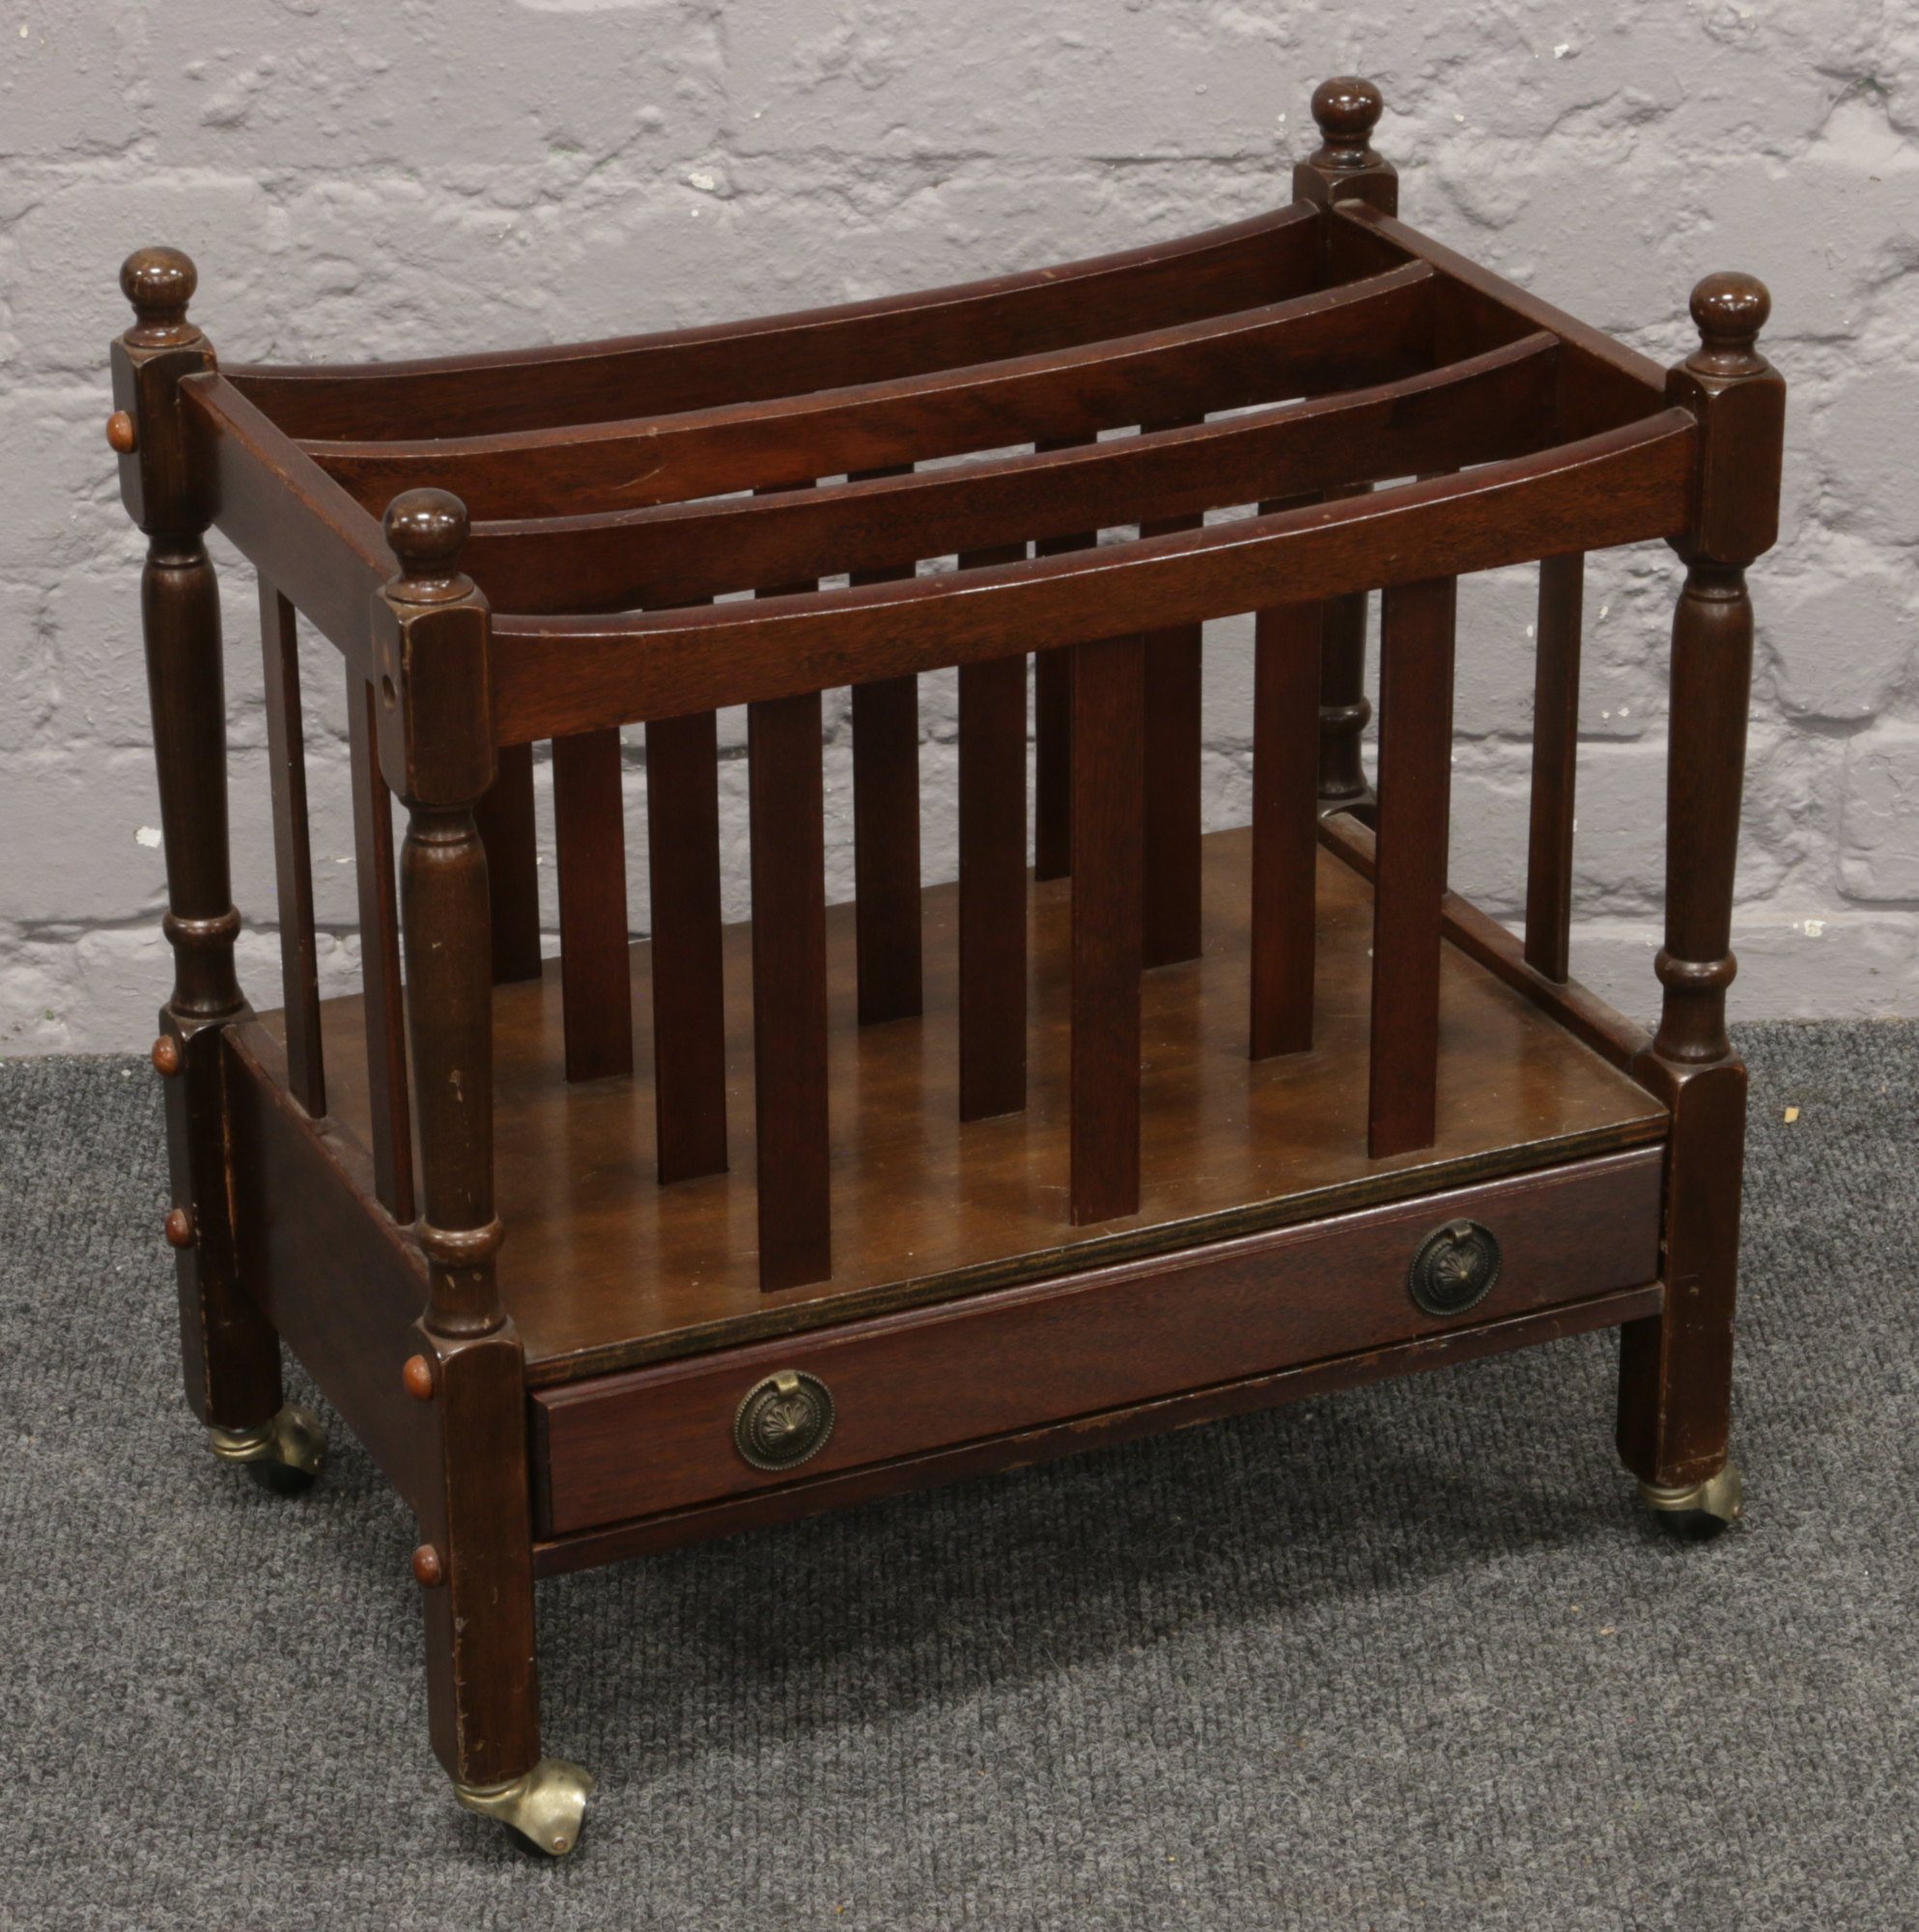 Lot 602 - A mahogany Canterbury.Condition report intended as a guide only.Some damage.